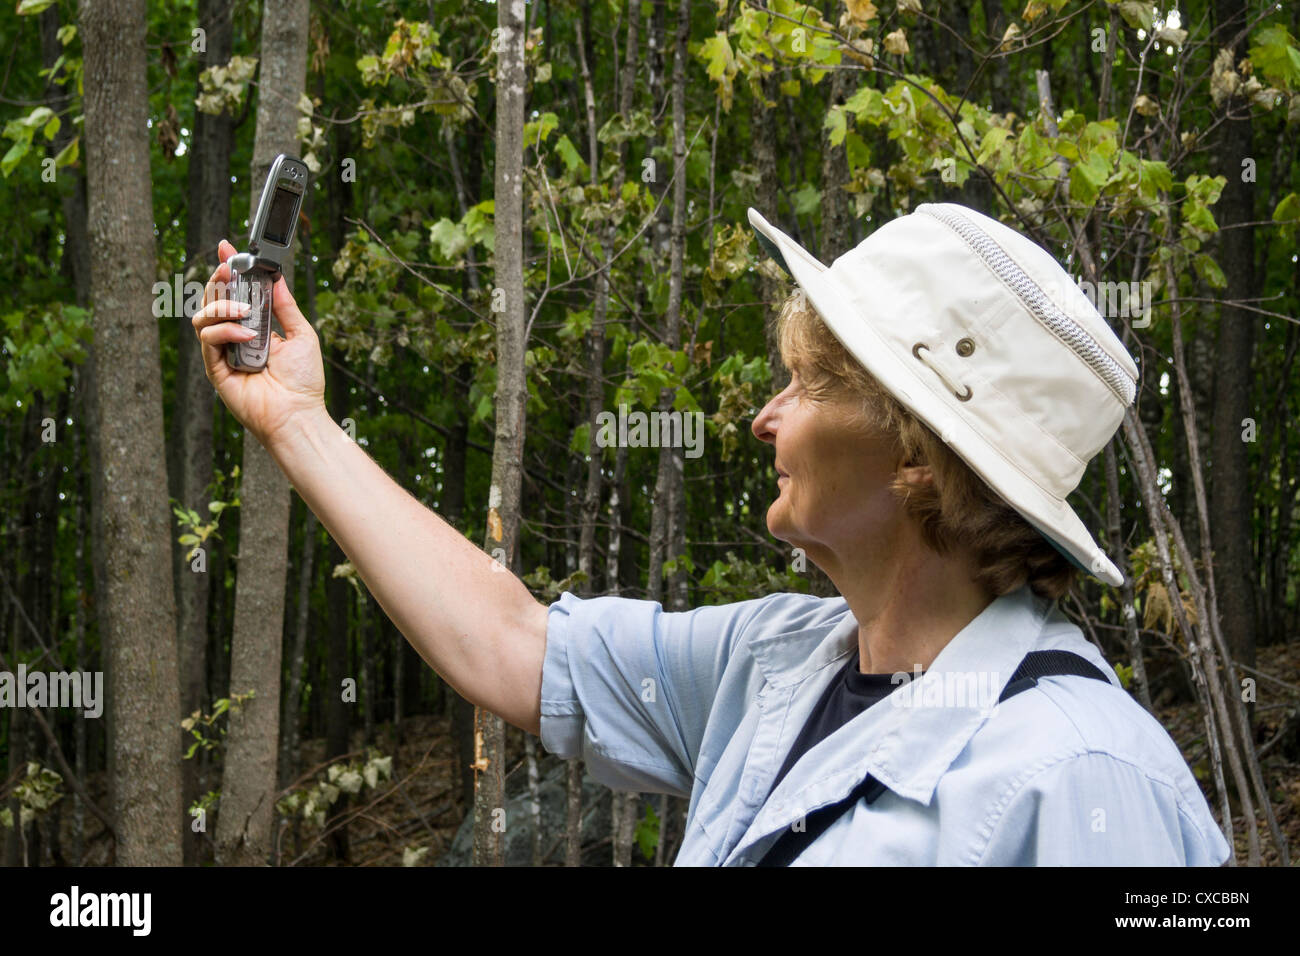 Trying for Reception. A woman hiking in the woods tests her clam shell mobile phone for reception. There is none. - Stock Image